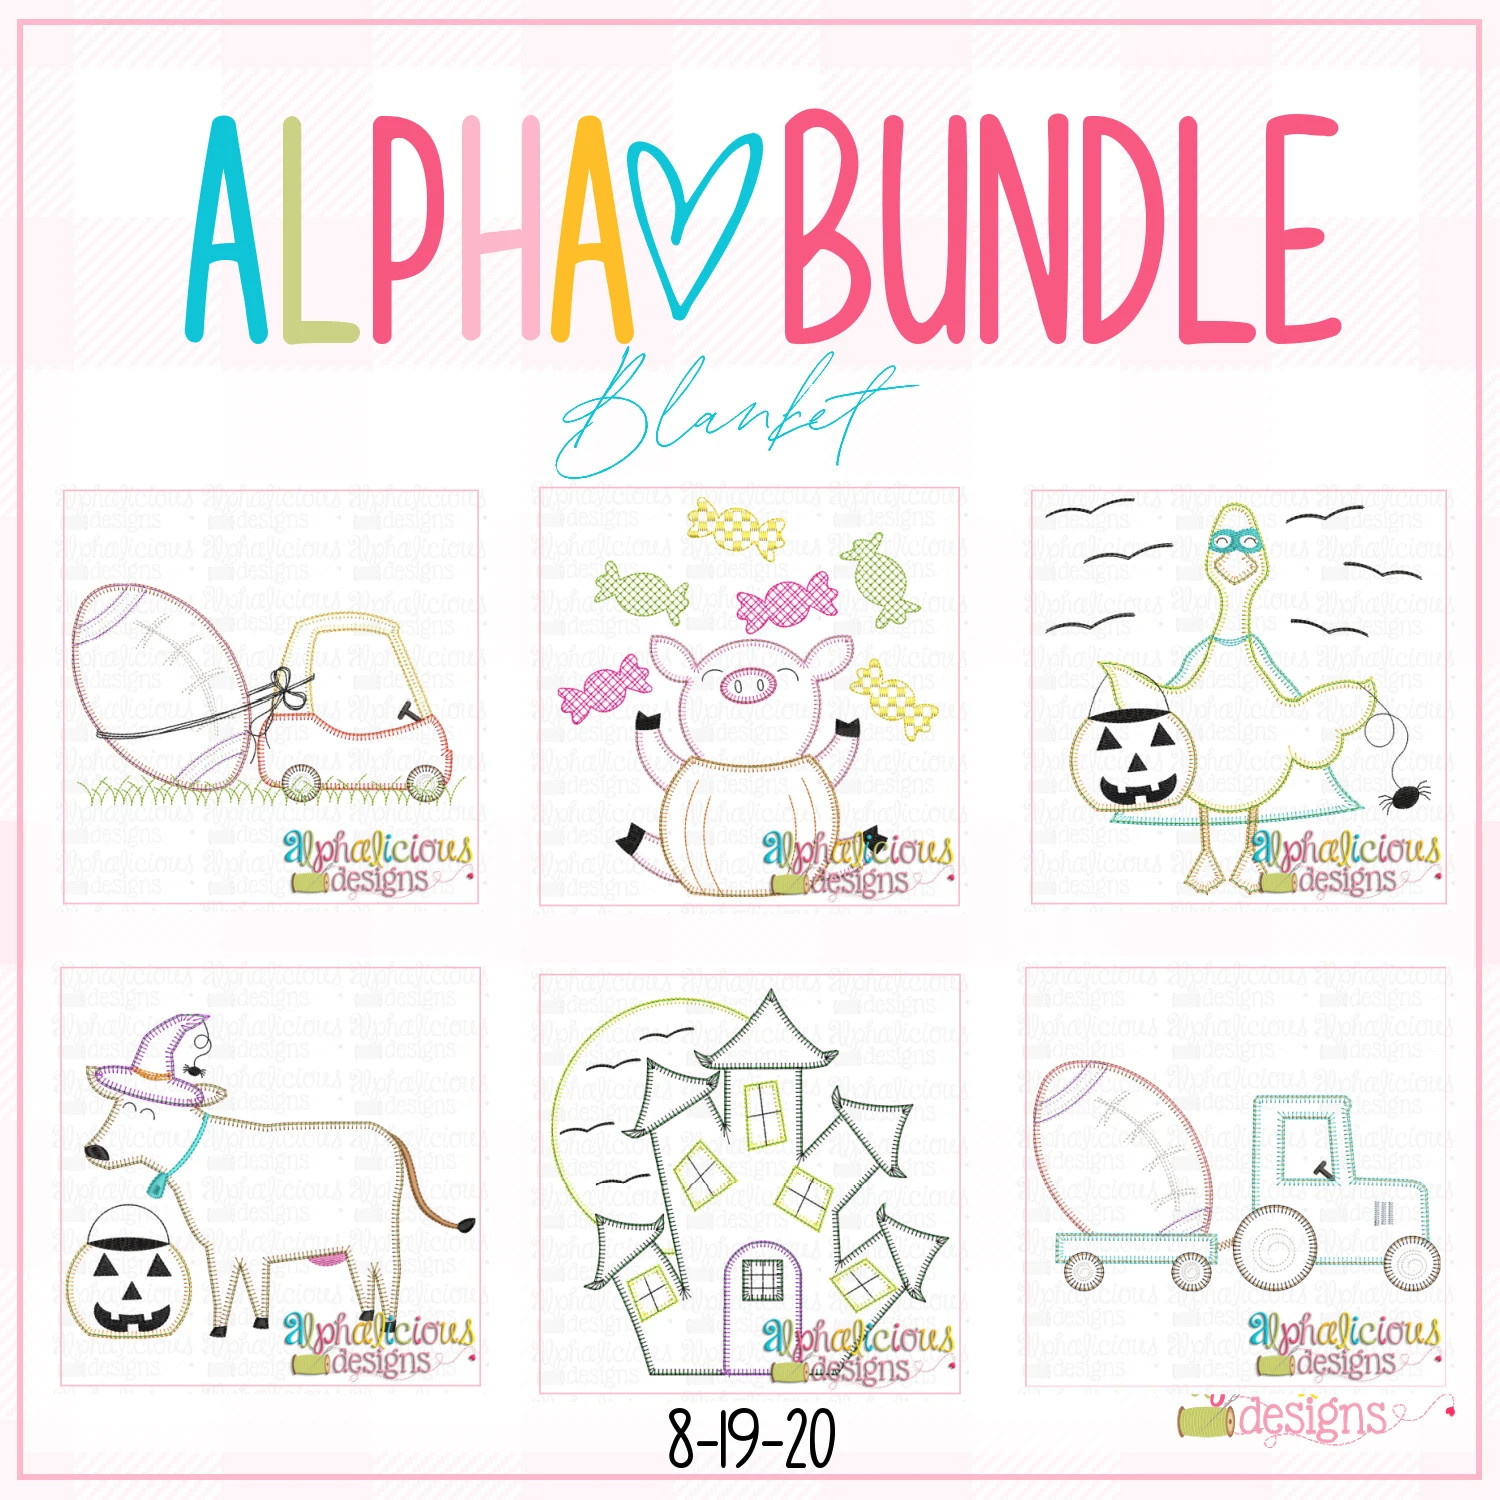 ALPHA BUNDLE-8/19/20 Release-Blanket Stitch